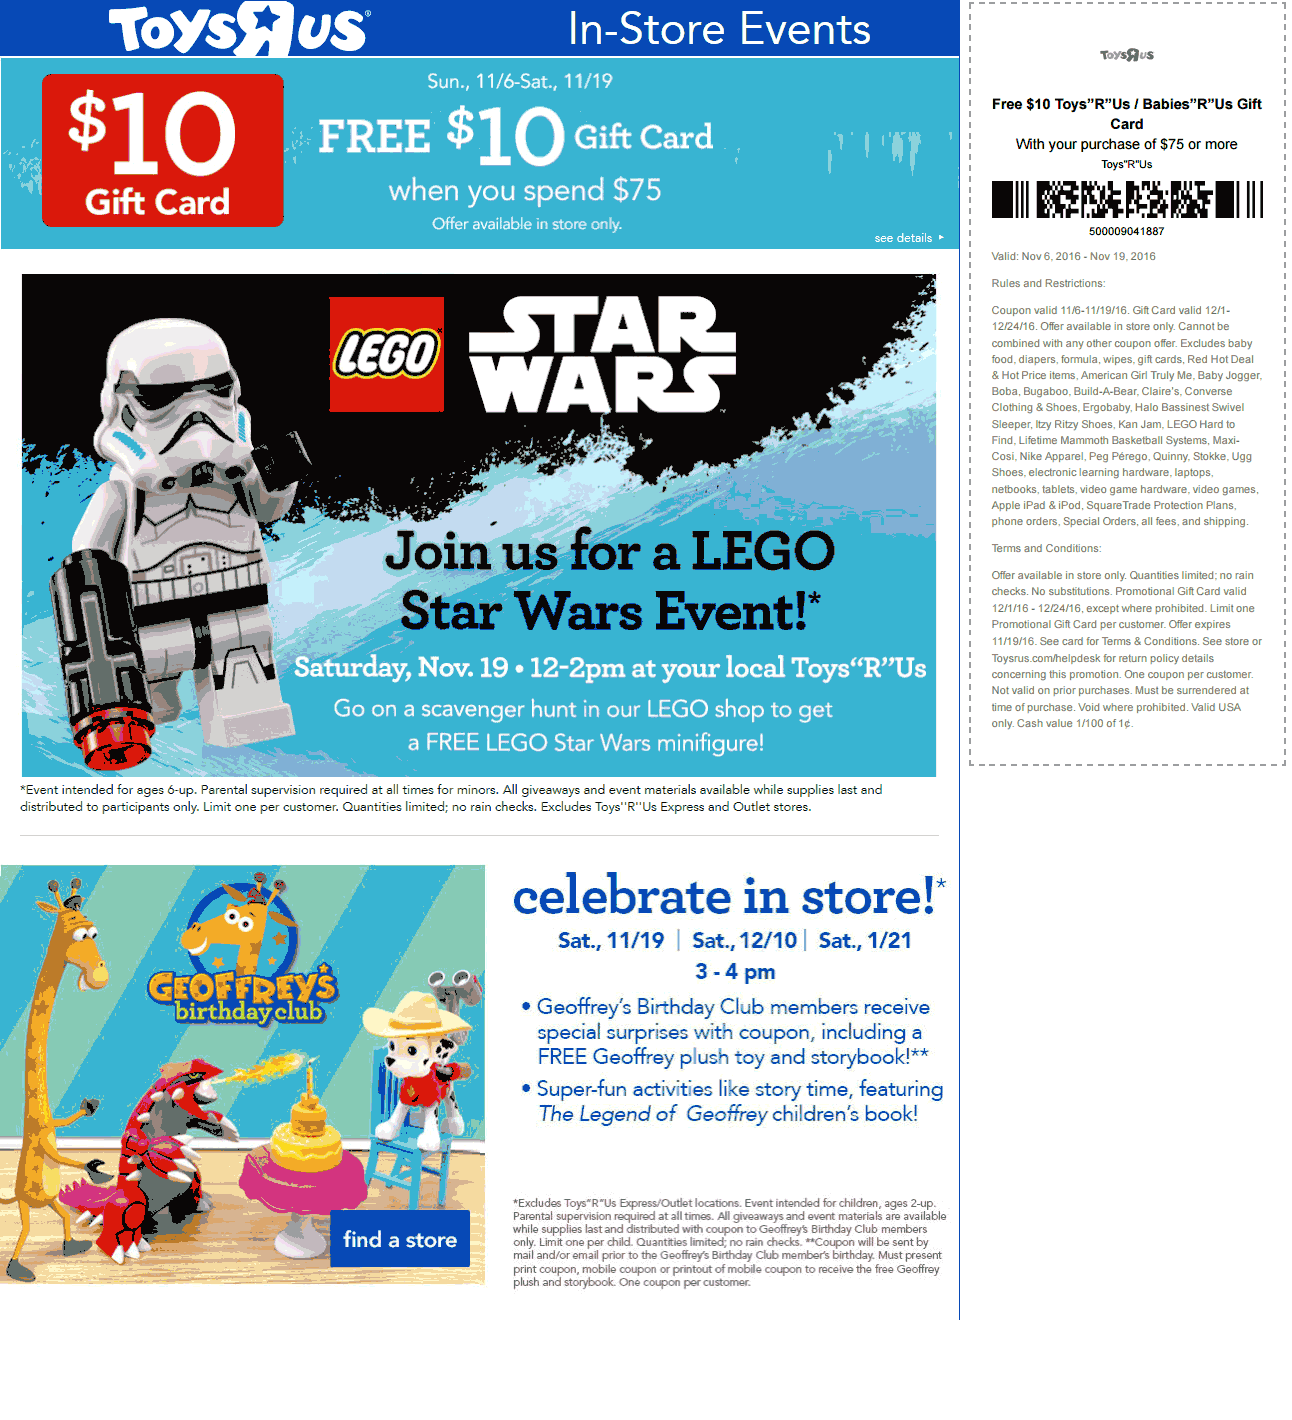 Pinned November 18th: #FREE #LEGO Star Wars figure Saturday also $10 gift card on $75 spent at Toys R Us #TheCouponsApp